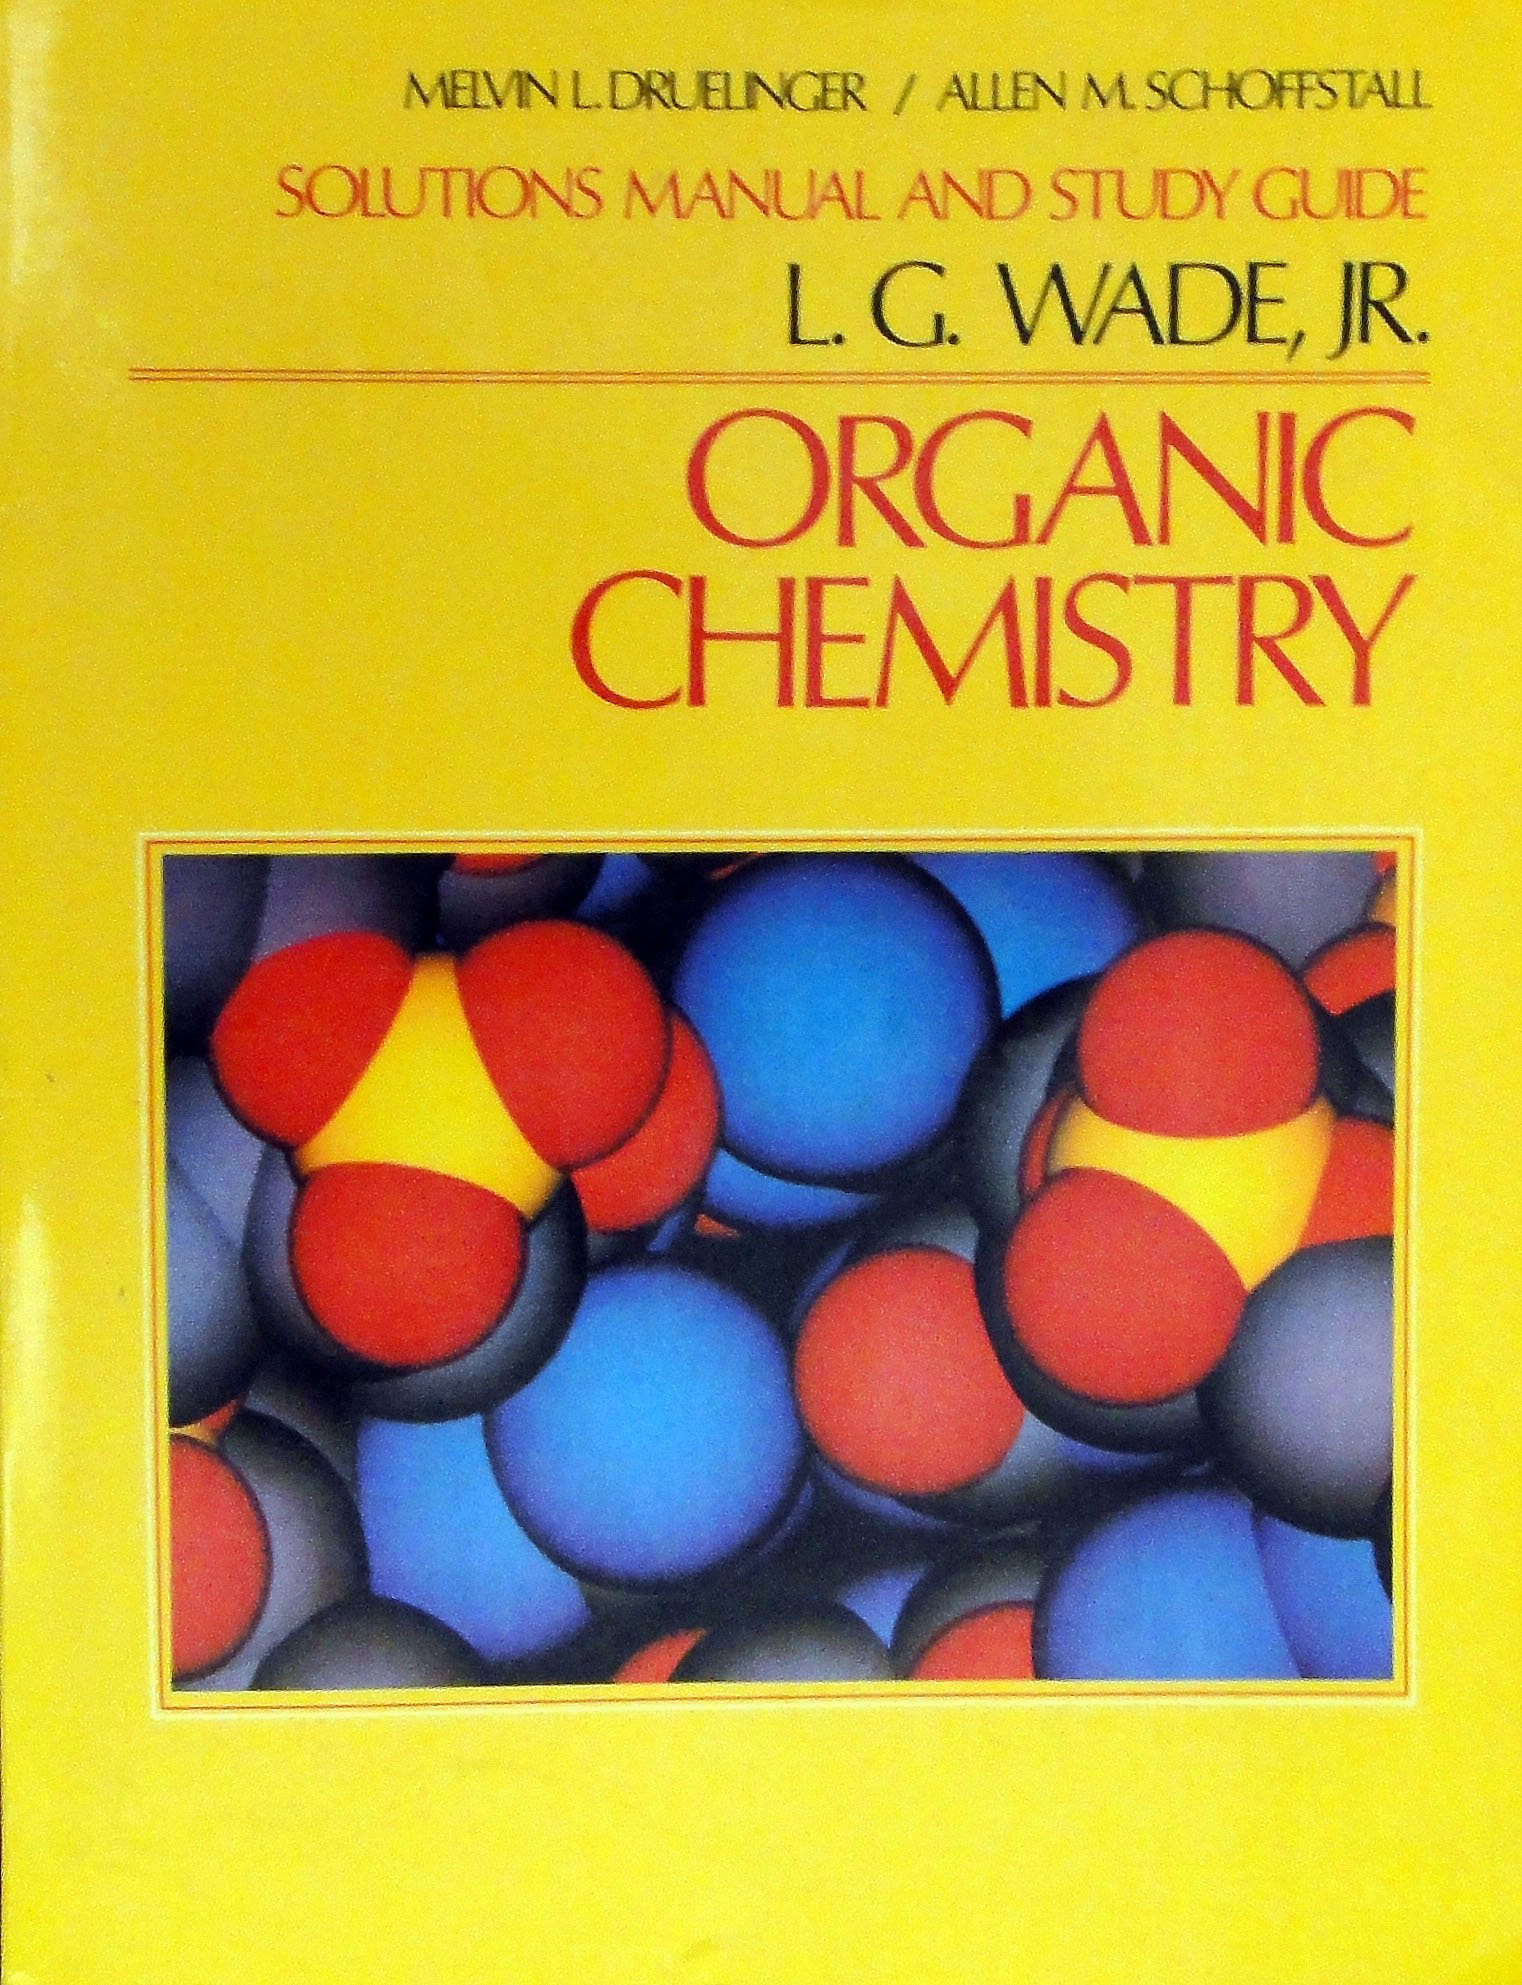 Organic Chemistry Solutions Manual and Study Guide: L. G. Wade. Jr.:  Amazon.com: Books